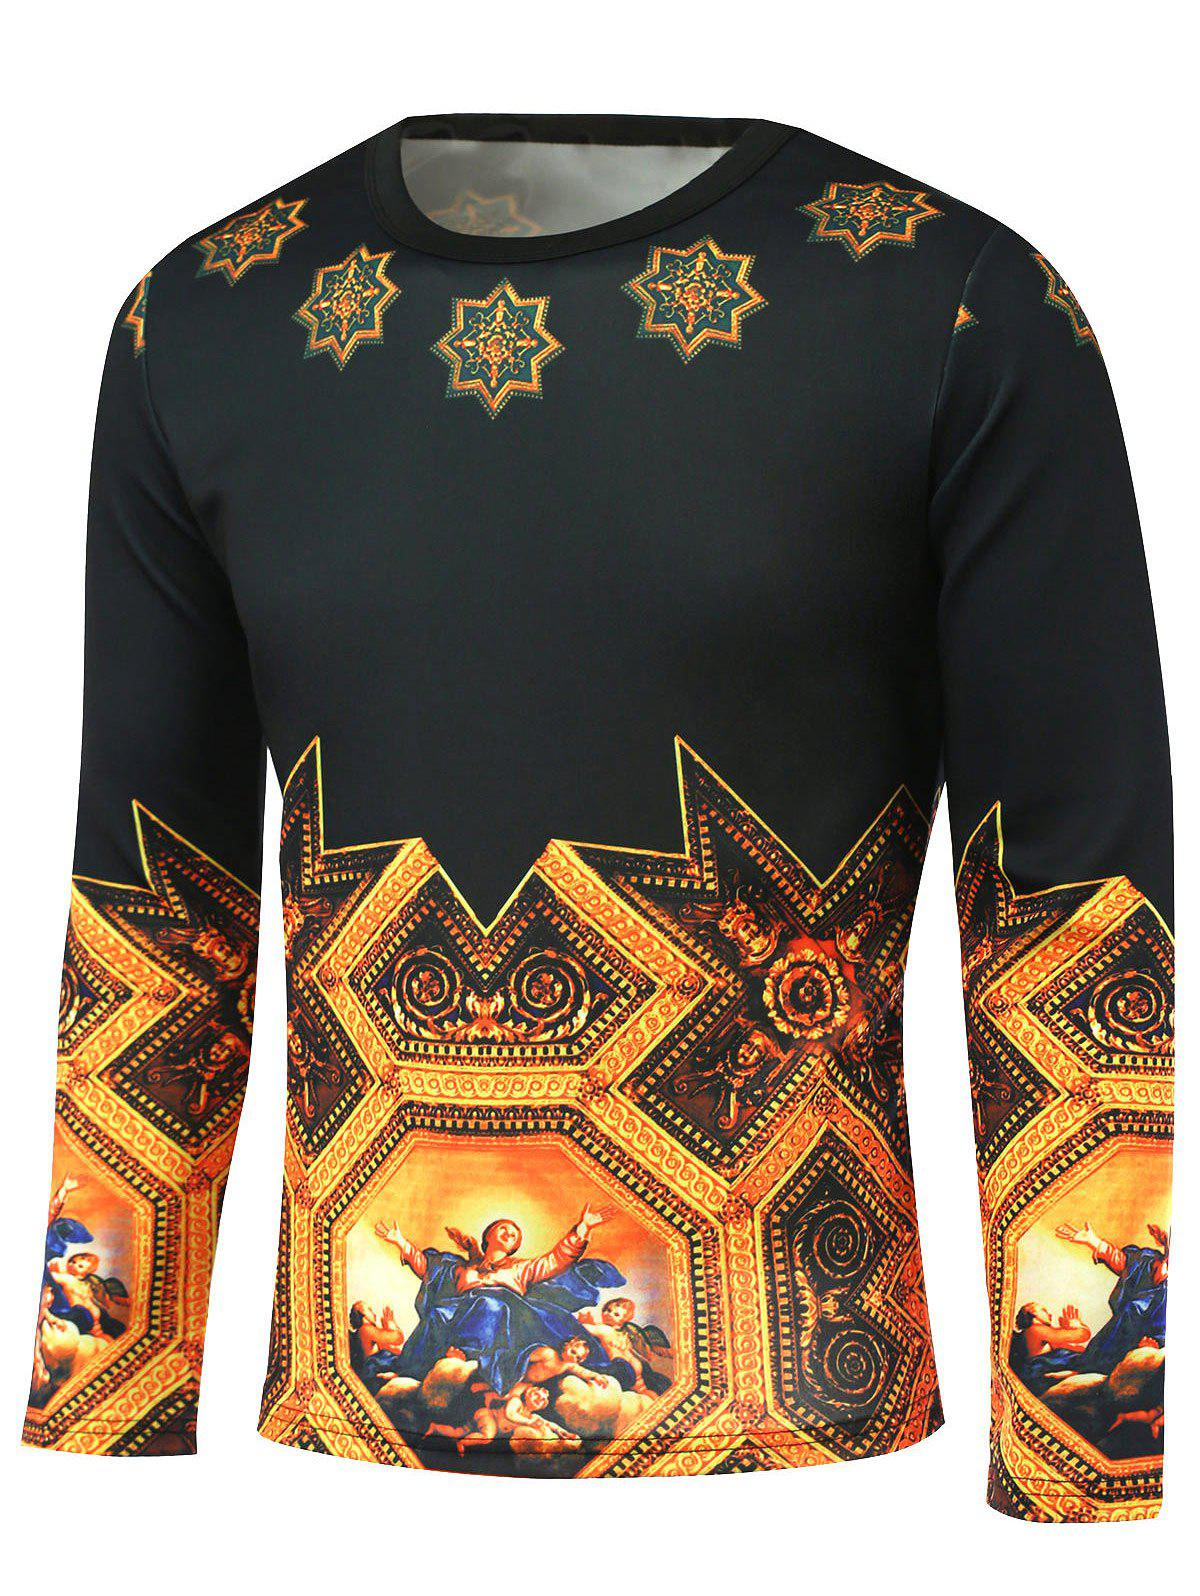 Long Sleeve Medieval Painting Pattern T-Shirt - BLACK/GOLDEN XL